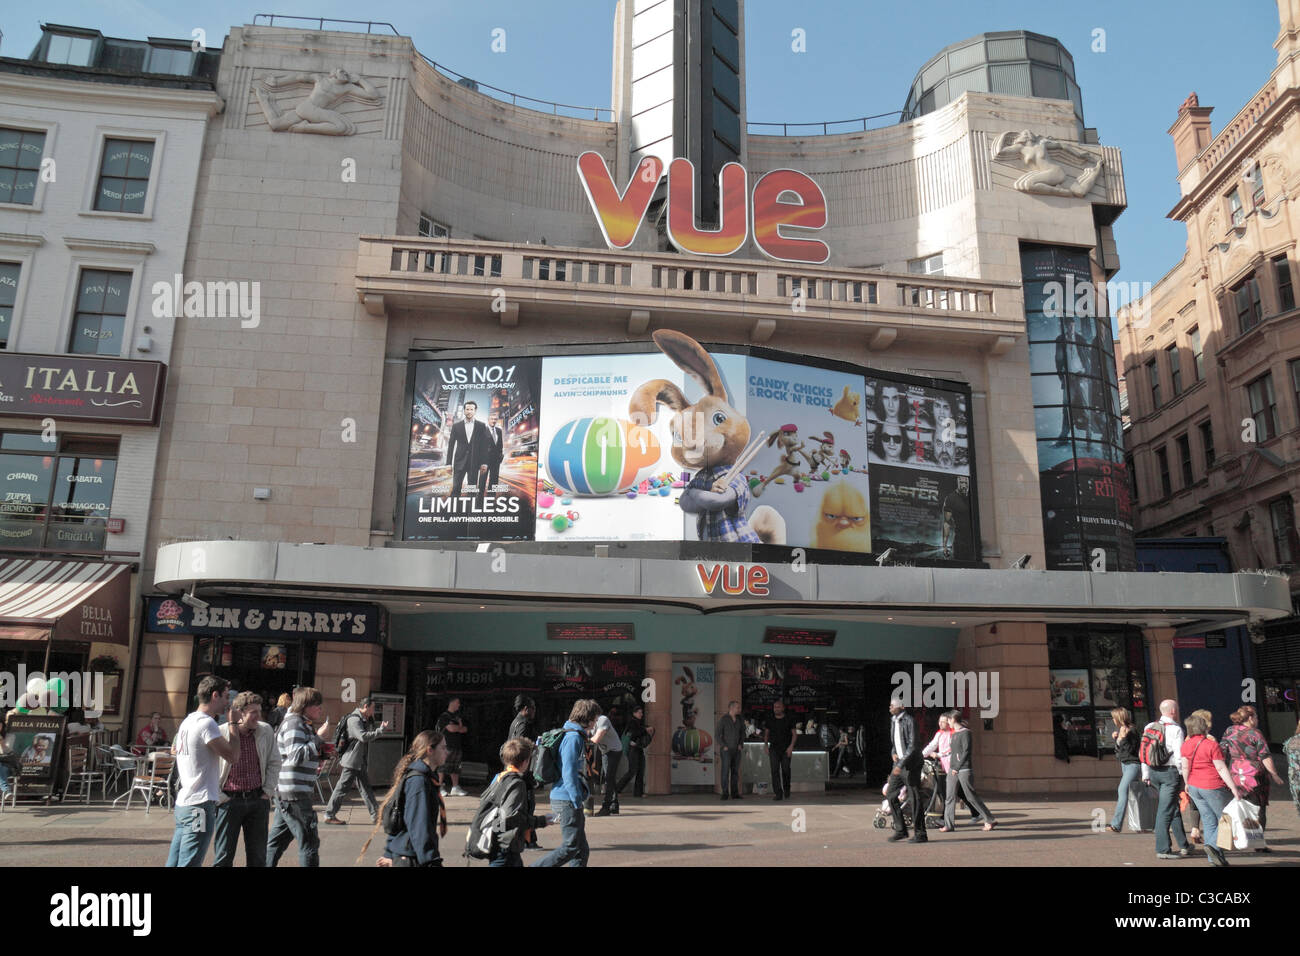 Vue cinema in west end rate my ass for Cafe le jardin bell lane london